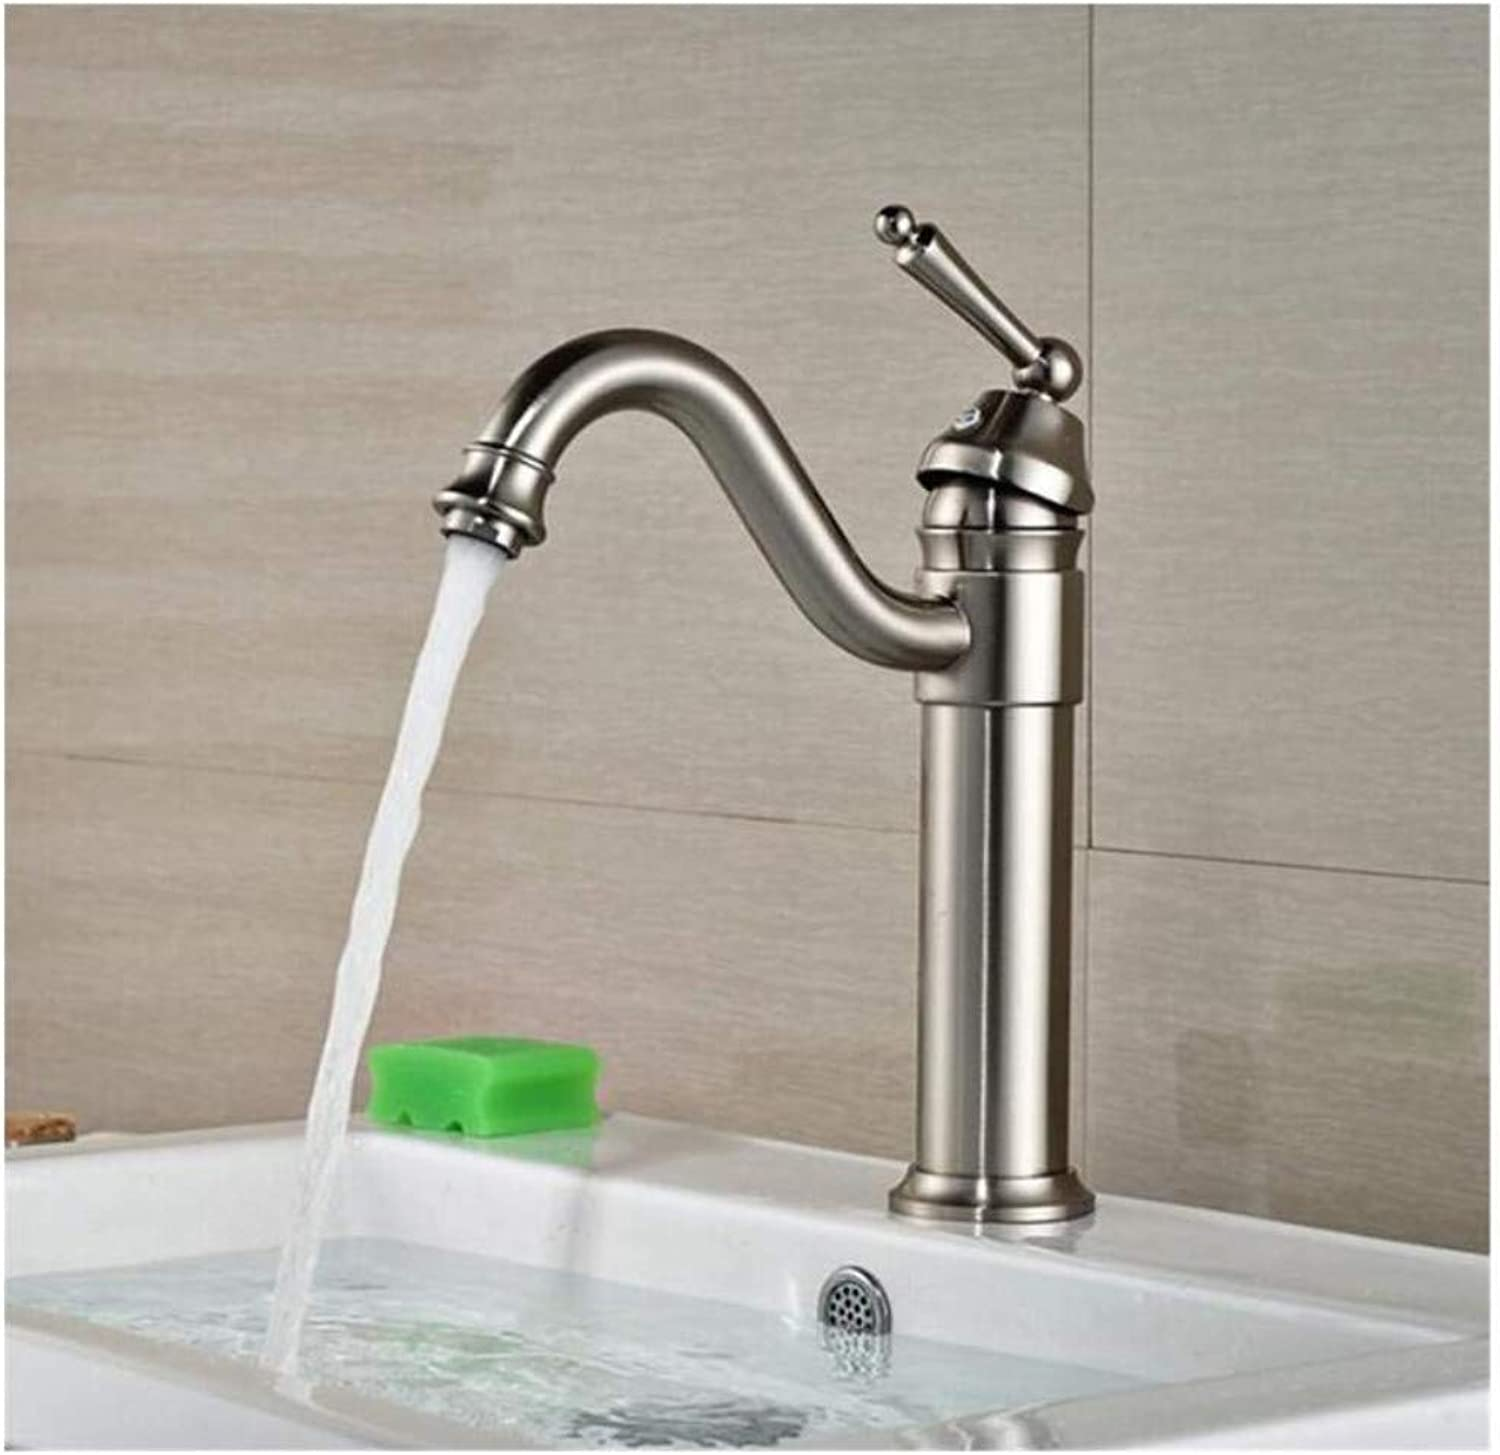 Chrome-Plated Adjustable Temperature-Sensitive Led Faucethandle Basin Mixer Tap Spout Tap Multi-colors